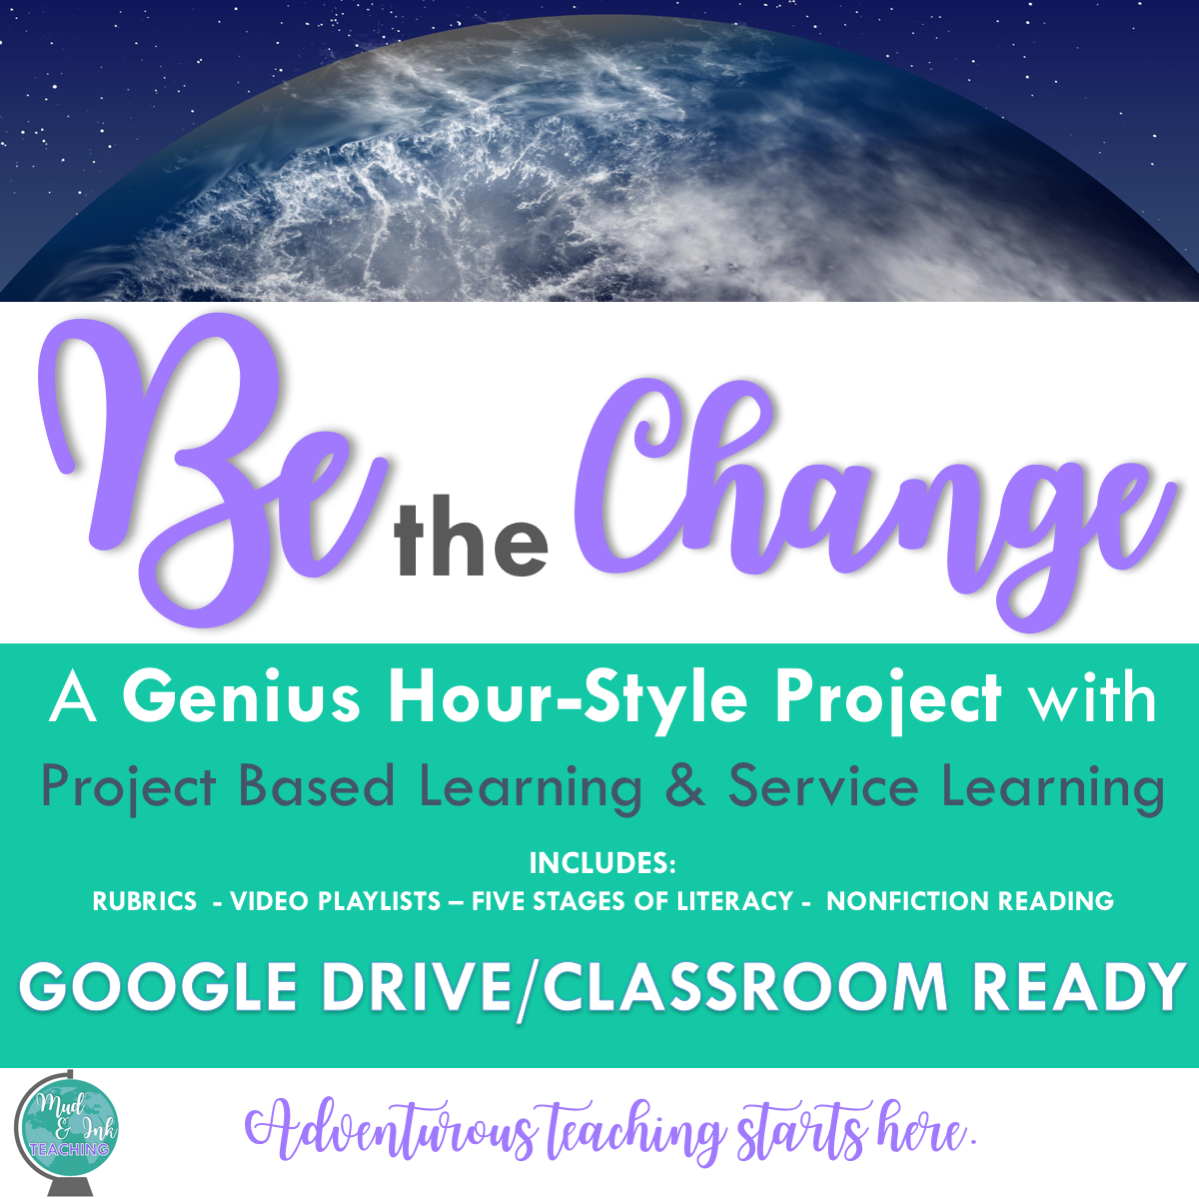 A service learning project that any high school English teacher can implement in her classroom.  Integrate research, reading, and project based learning all under the umbrella of service learning.